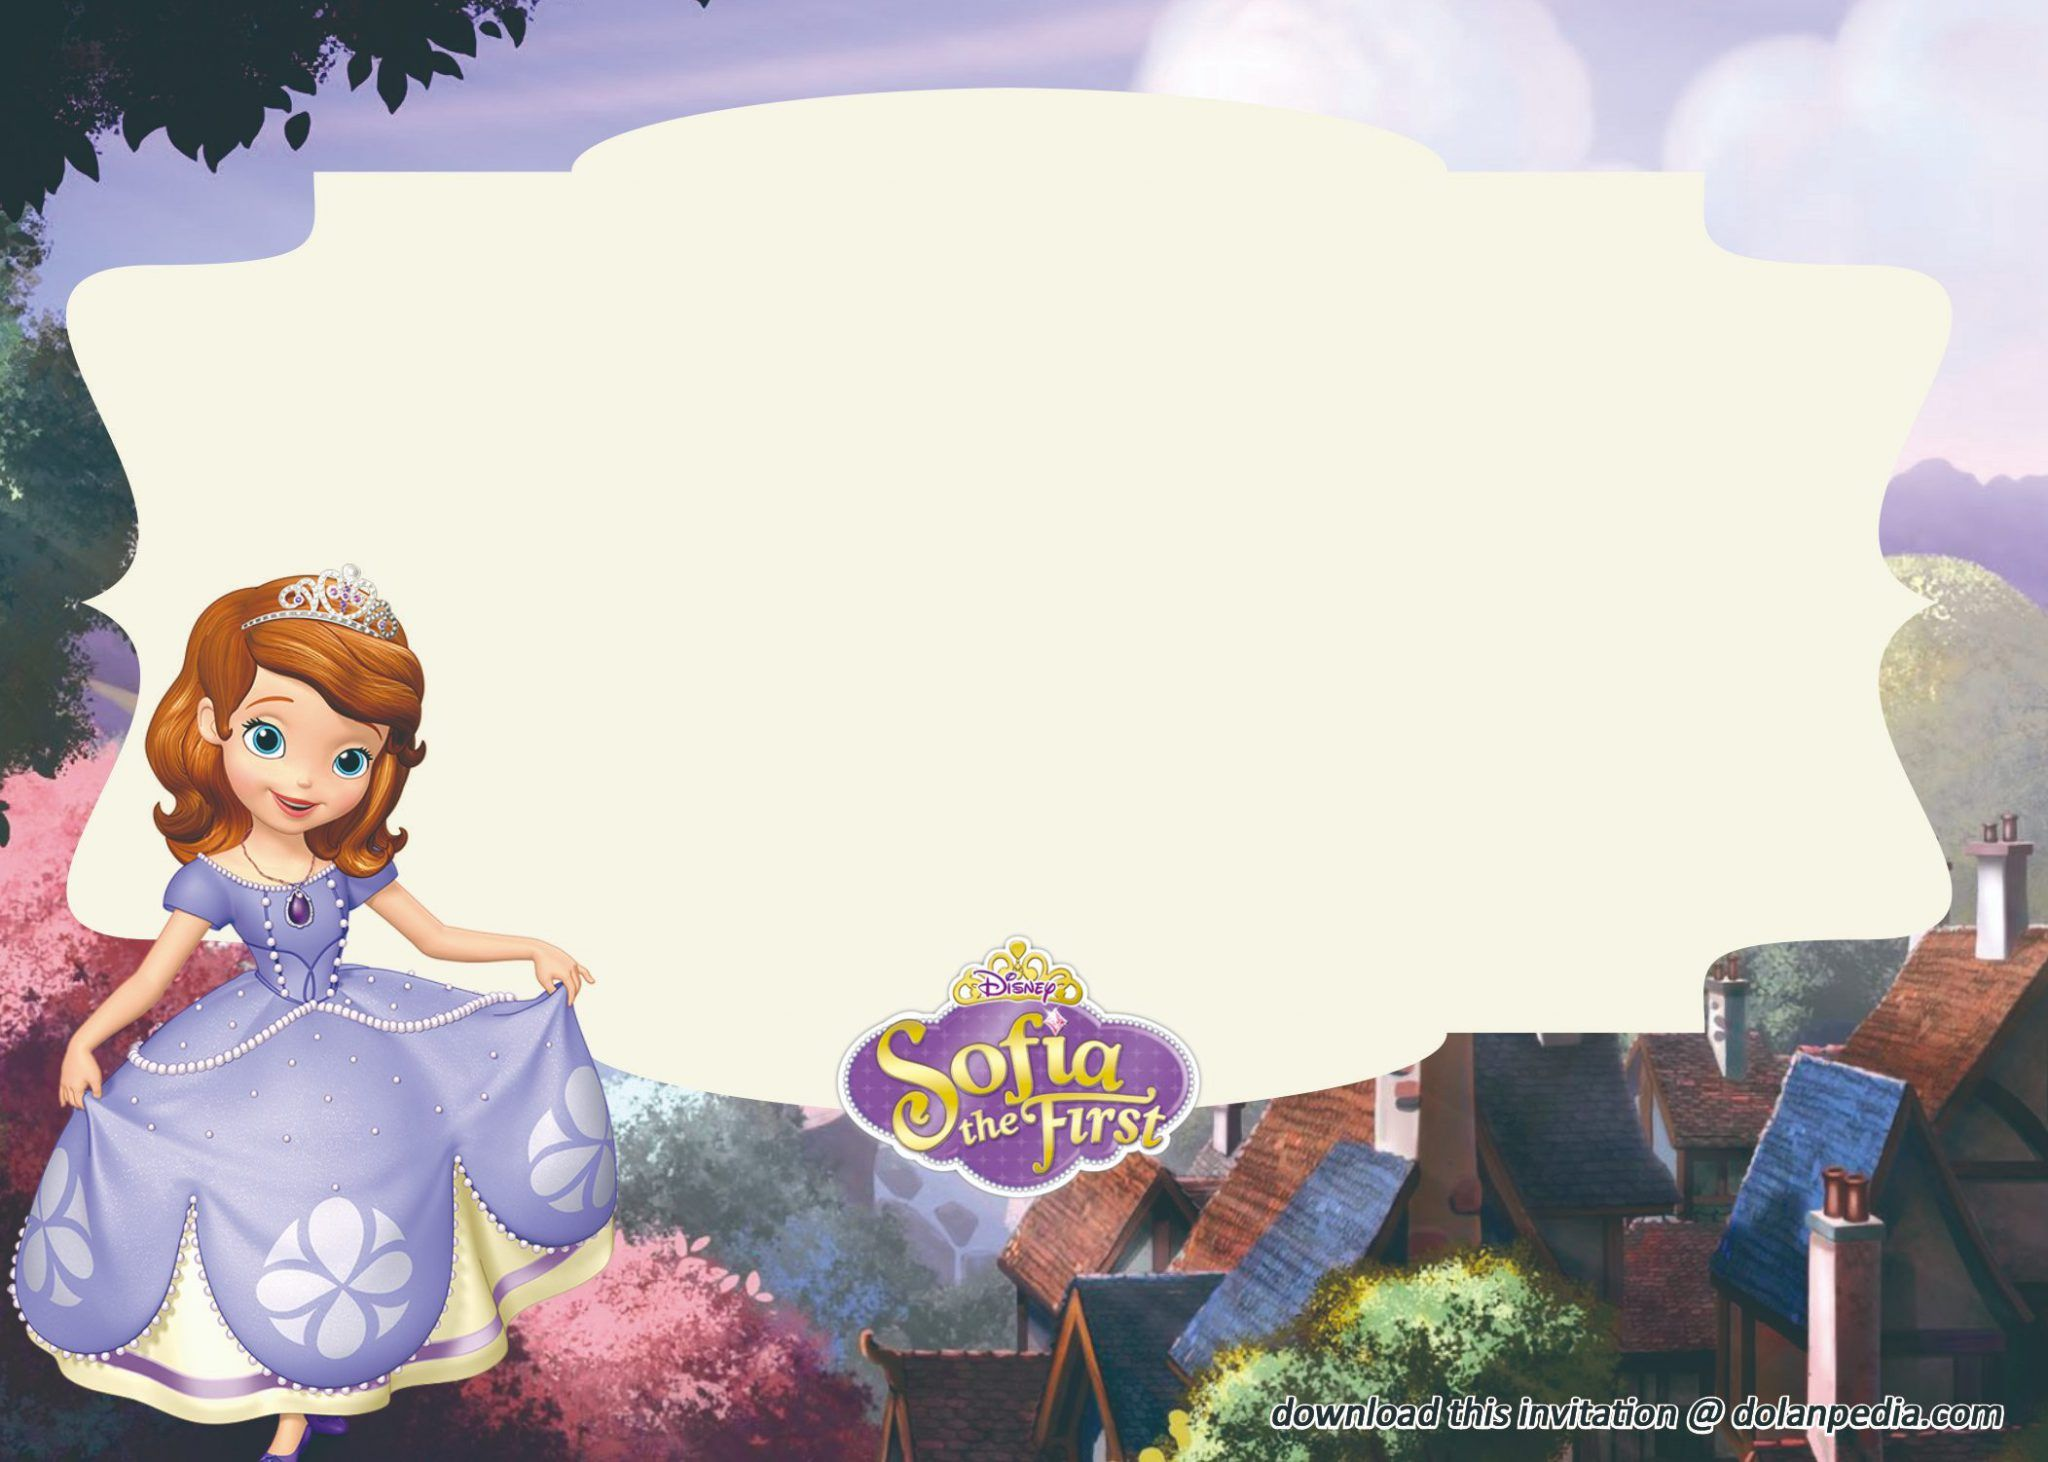 Does Your Little Girl Love To Watch Sofia The First If She Doe Sofia The First Invitation Template Free Printable Party Invitations Free Birthday Invitations